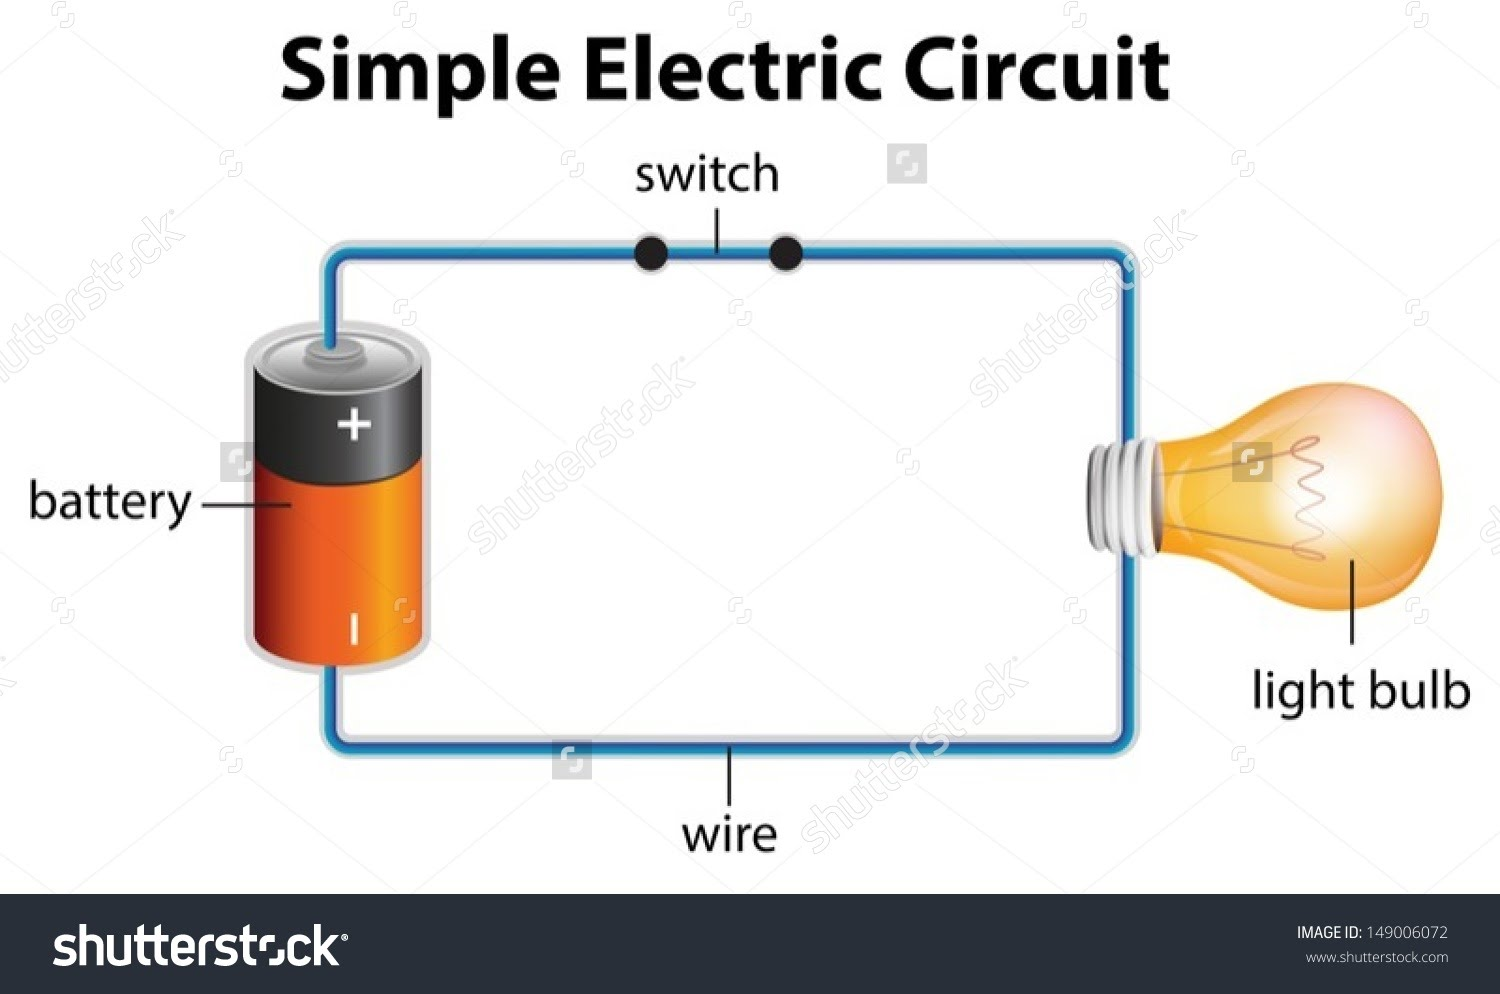 Daltons 2017 2018 Blog Electricity Potential Difference In Circuits Http Physicsclassroomcom Class Lesson 1 Electric